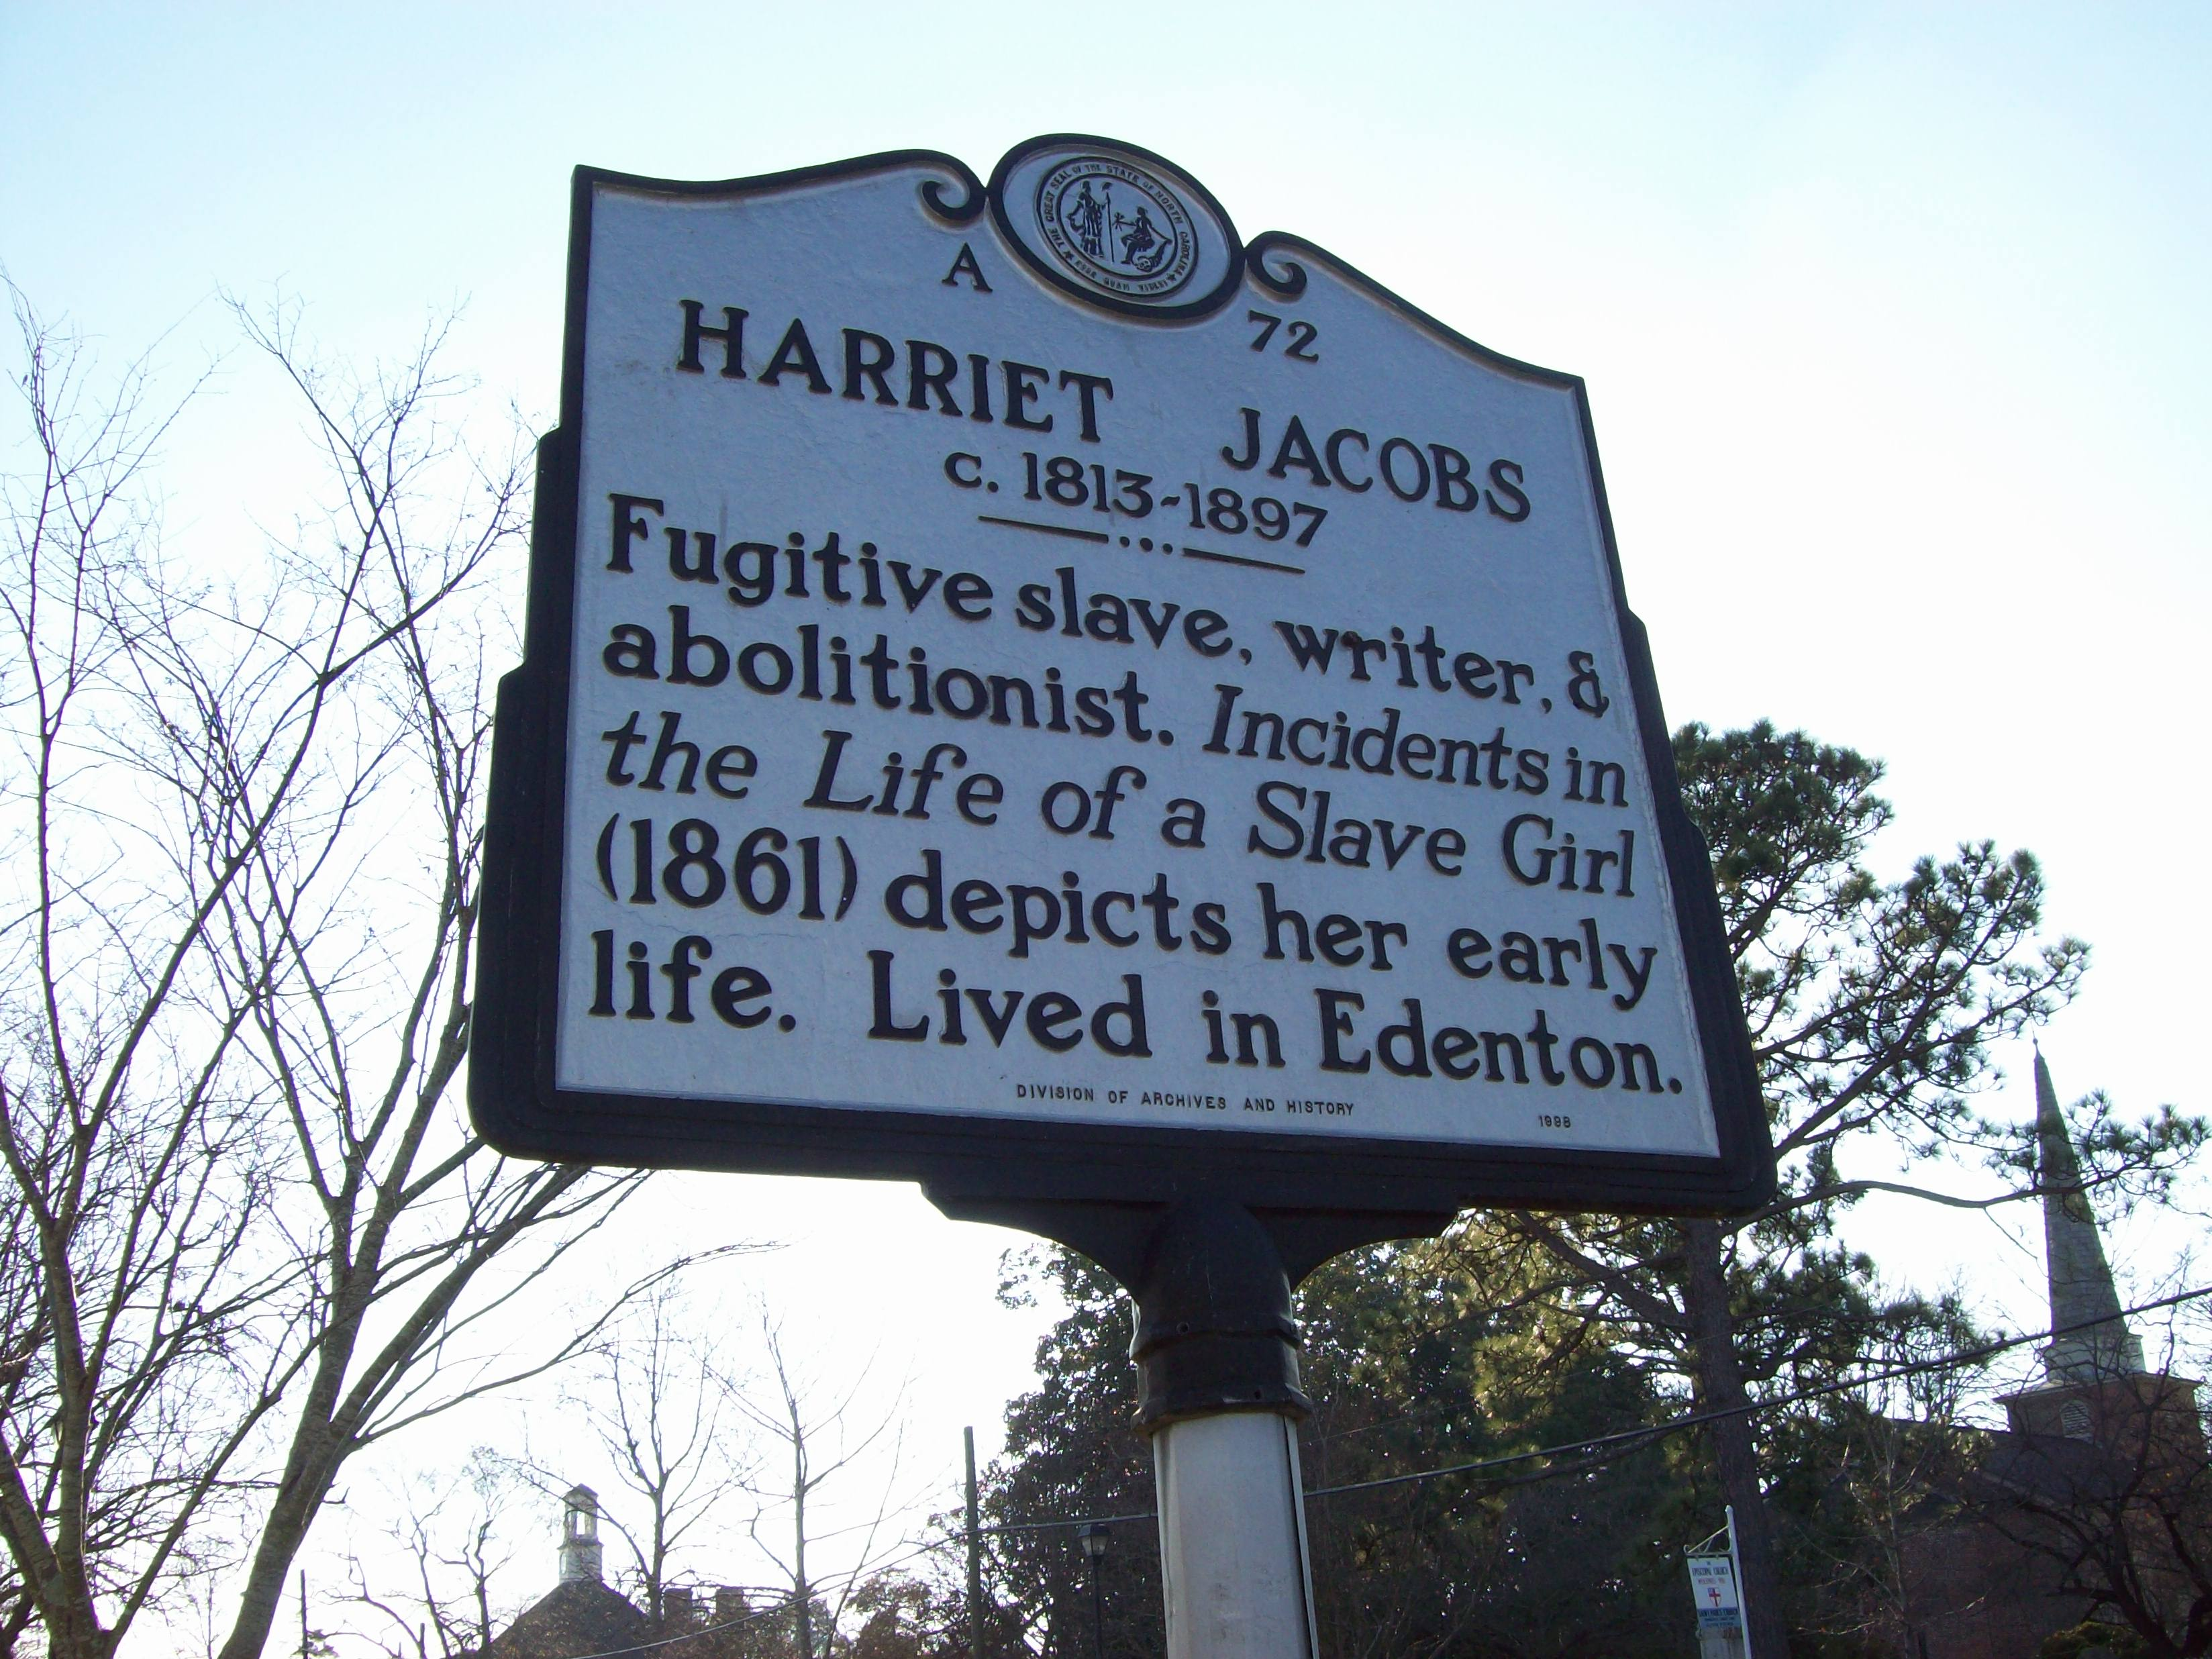 edenton north carolina an historic town american history for jacobs